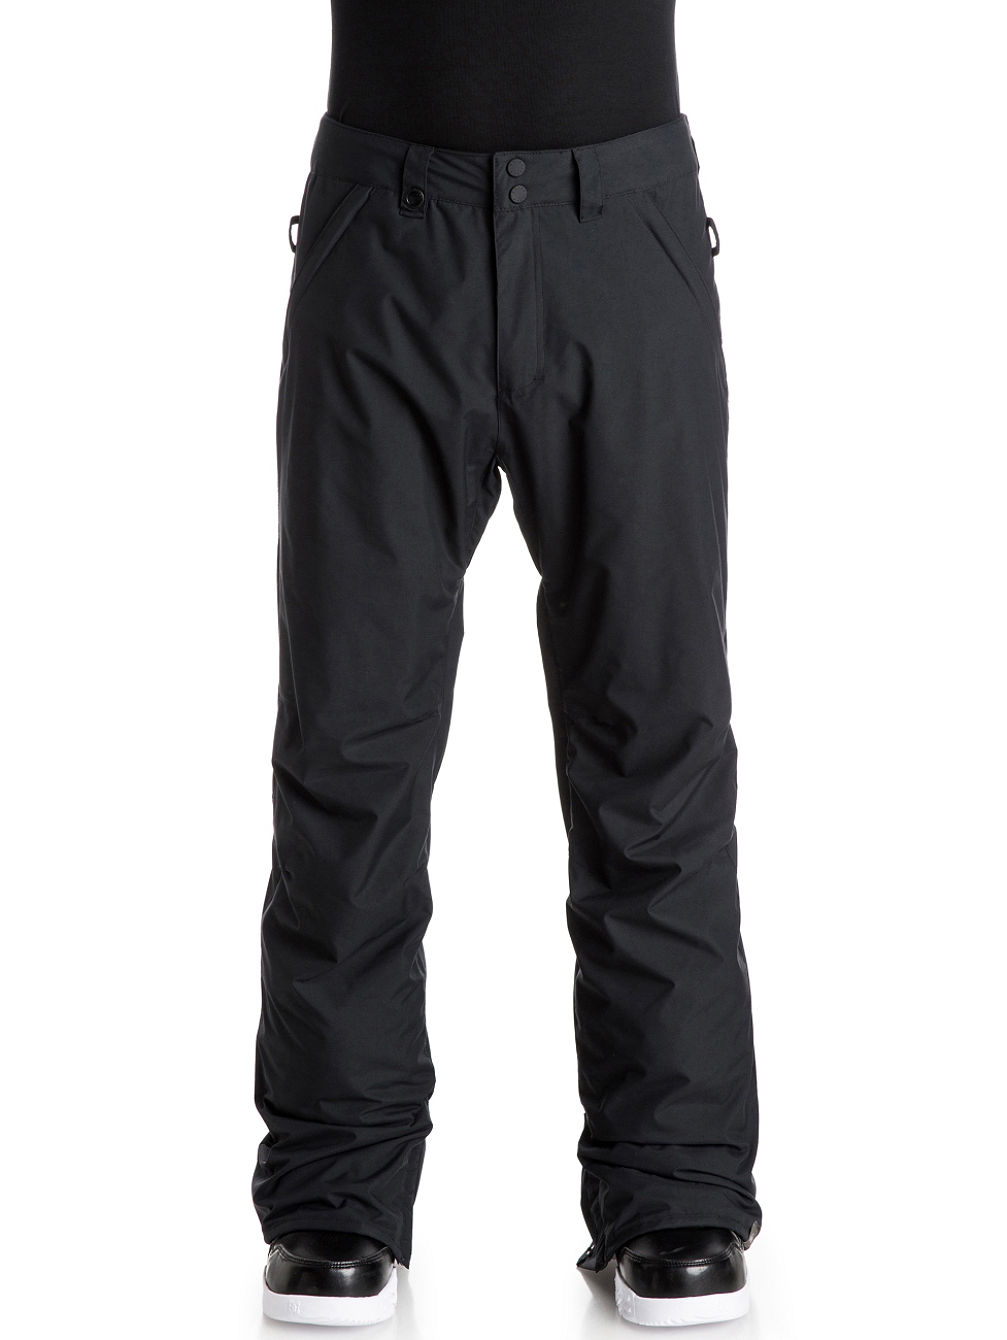 quiksilver-estate-pants